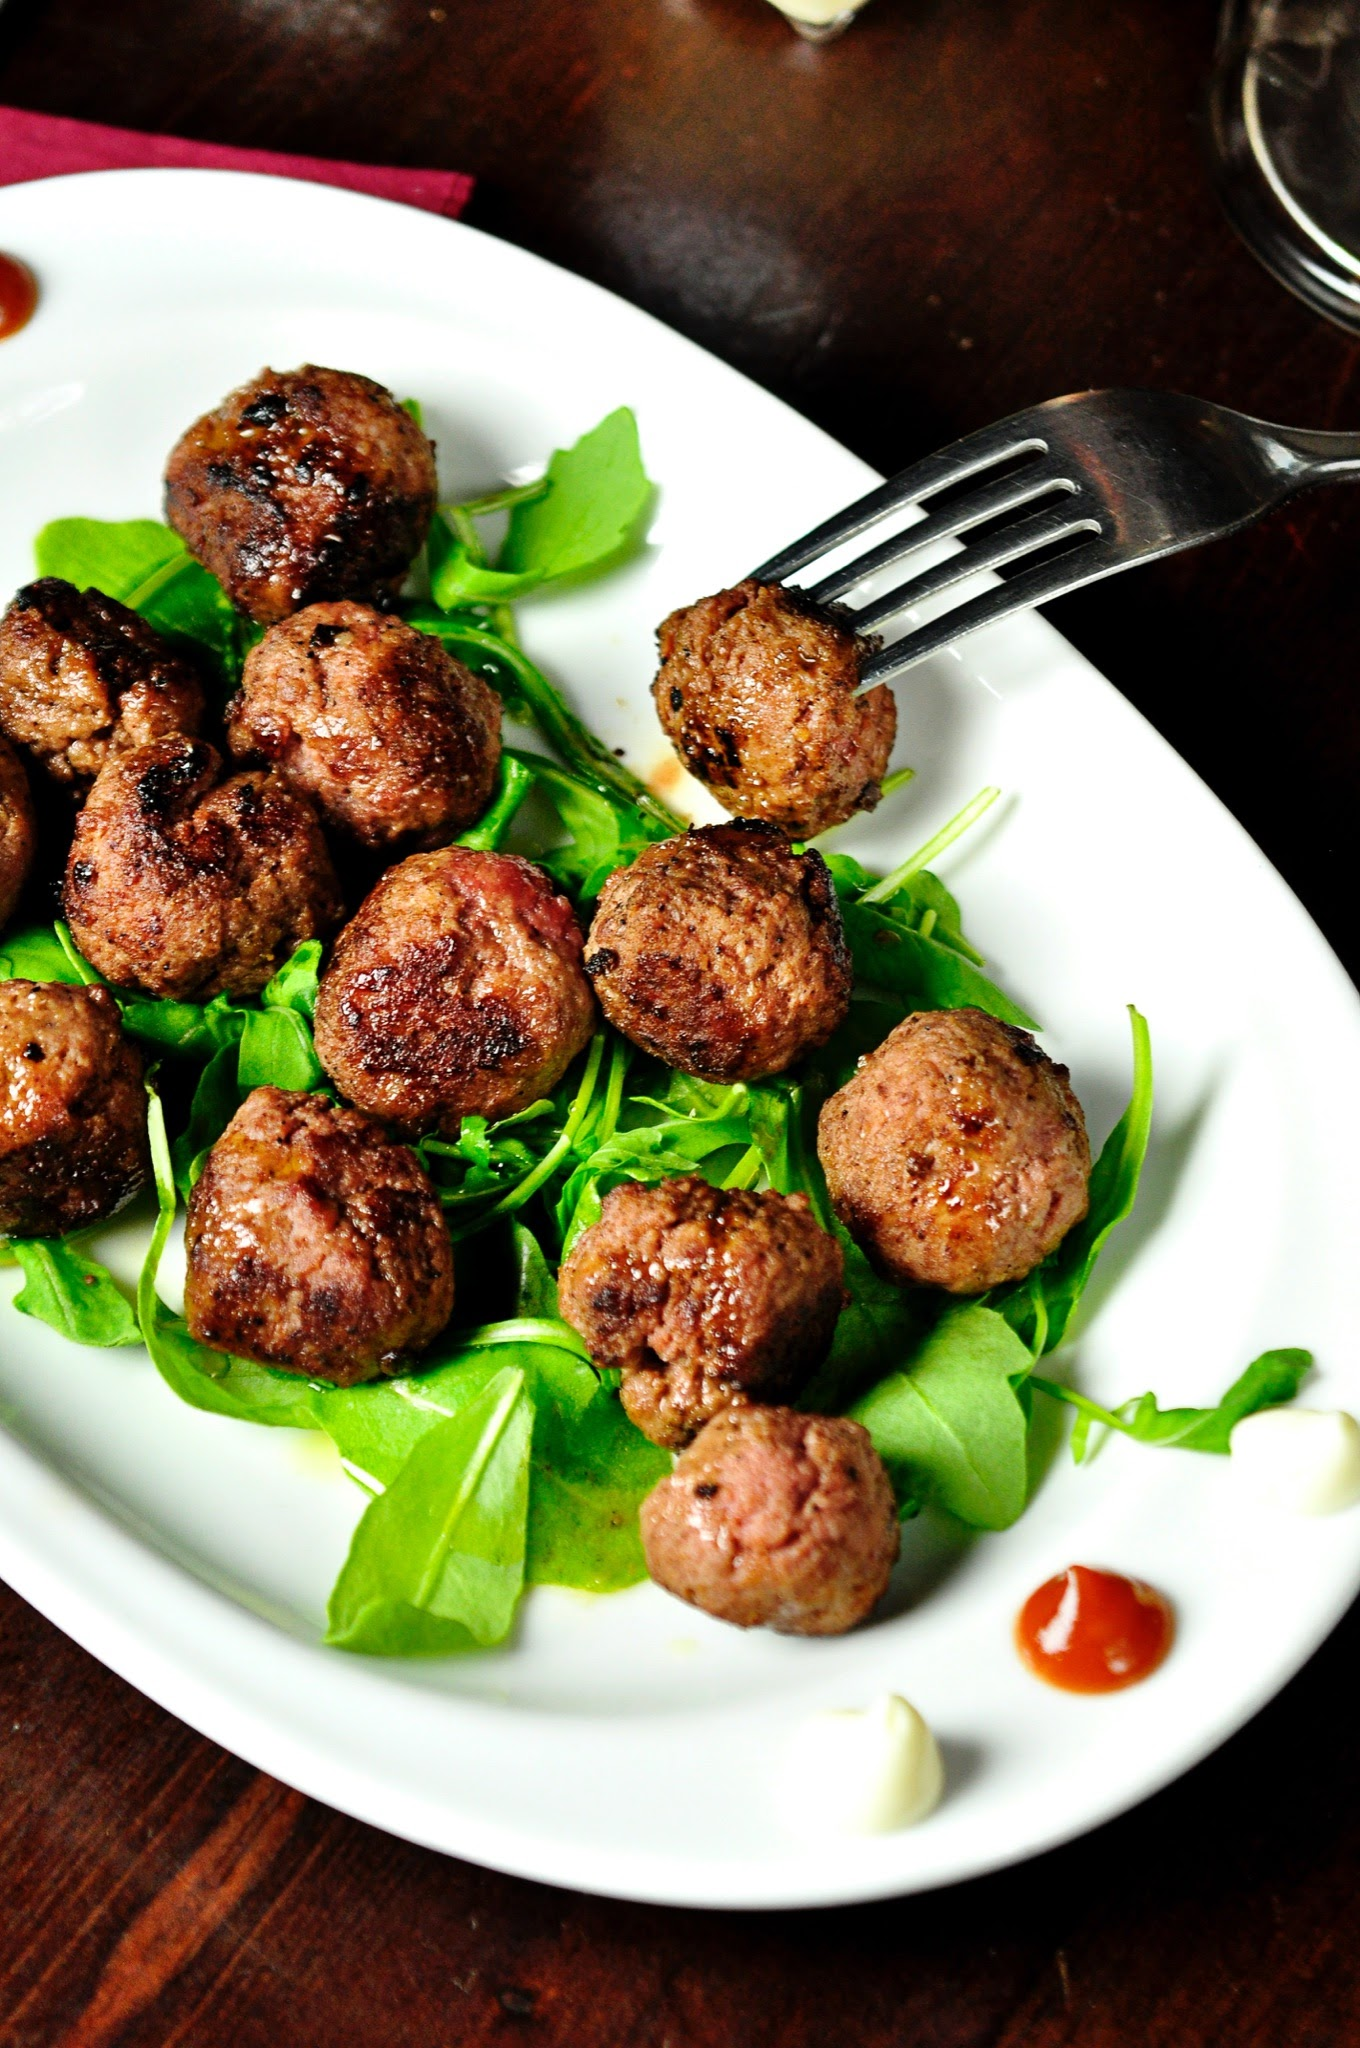 meatballs and leafy greens